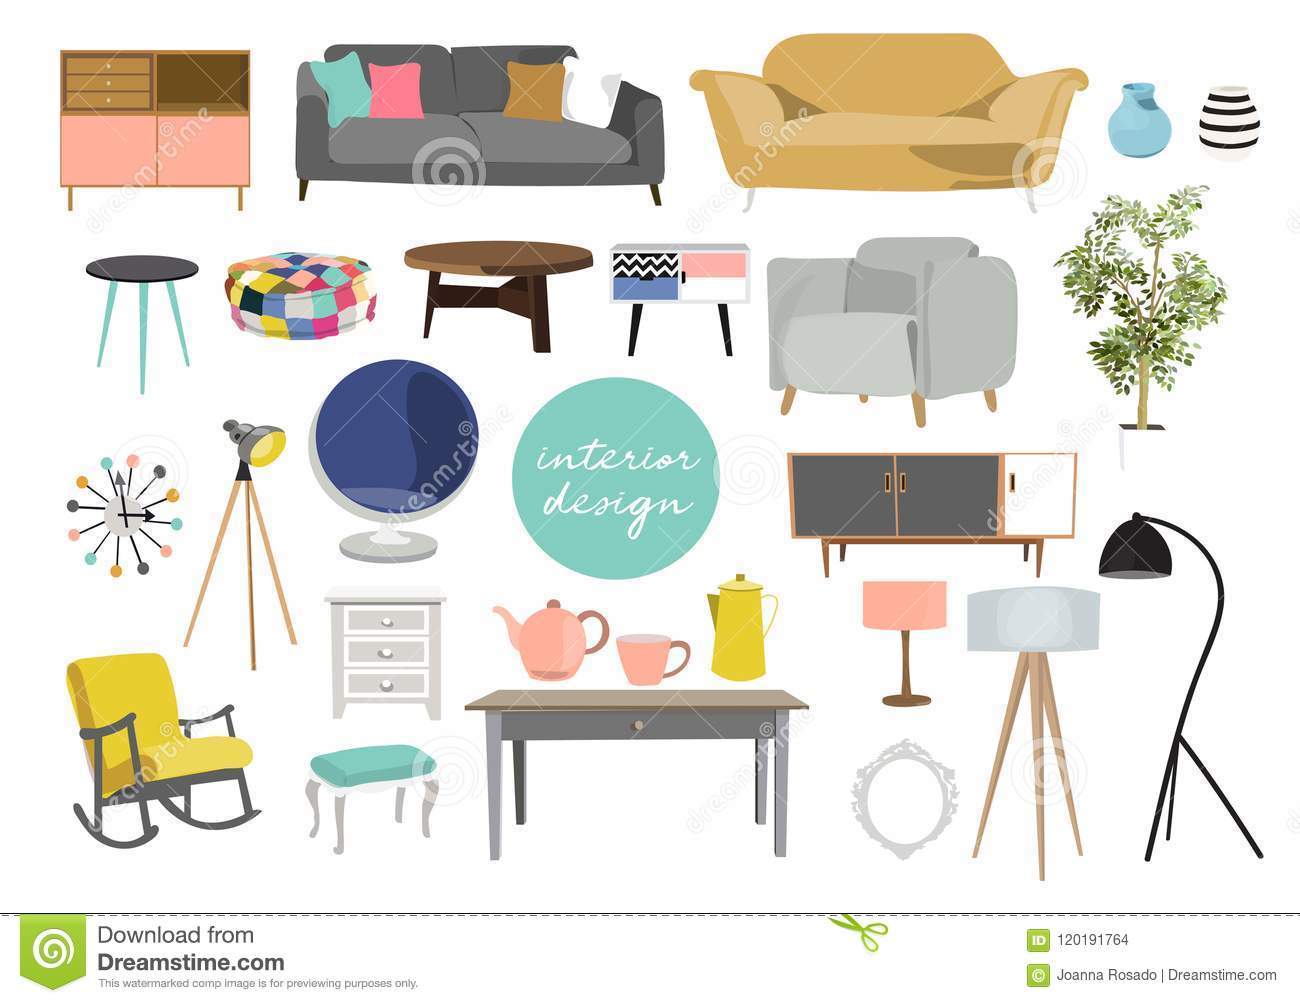 Collection of furniture interior design elements in modern trendy style vector illustration of home decor elements